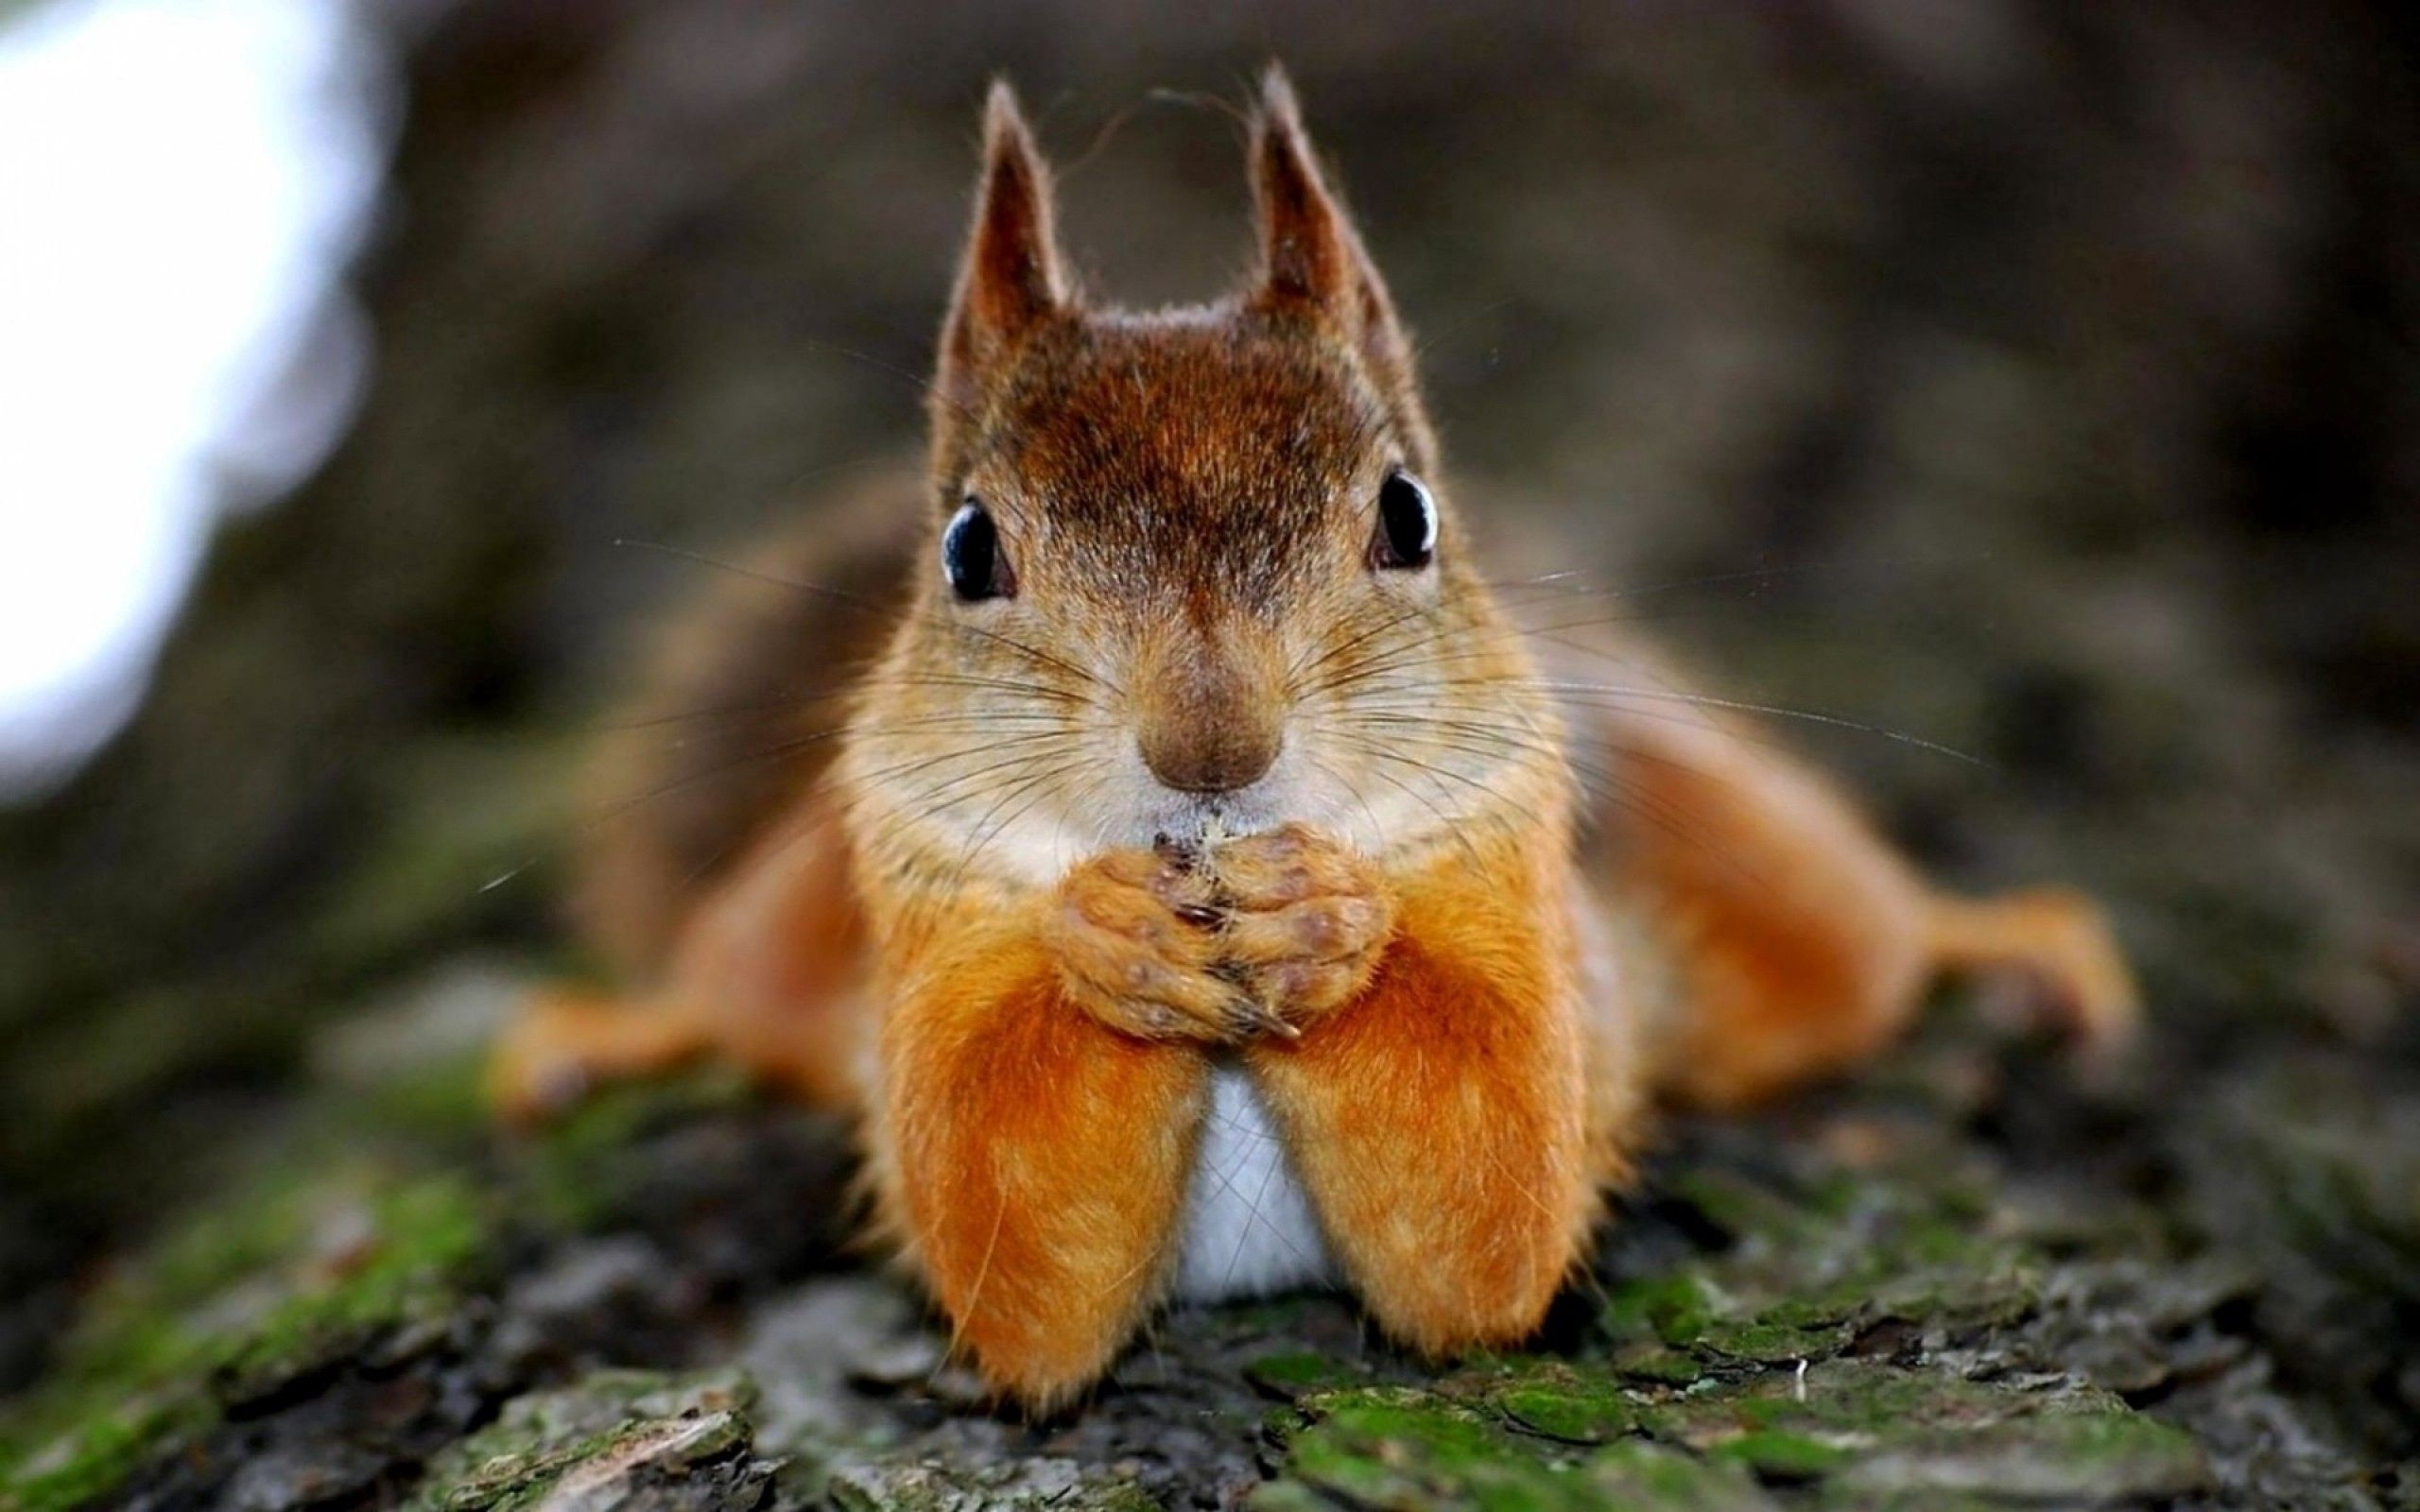 113601 download wallpaper Squirrel, Animals, Sight, Opinion, Animal screensavers and pictures for free